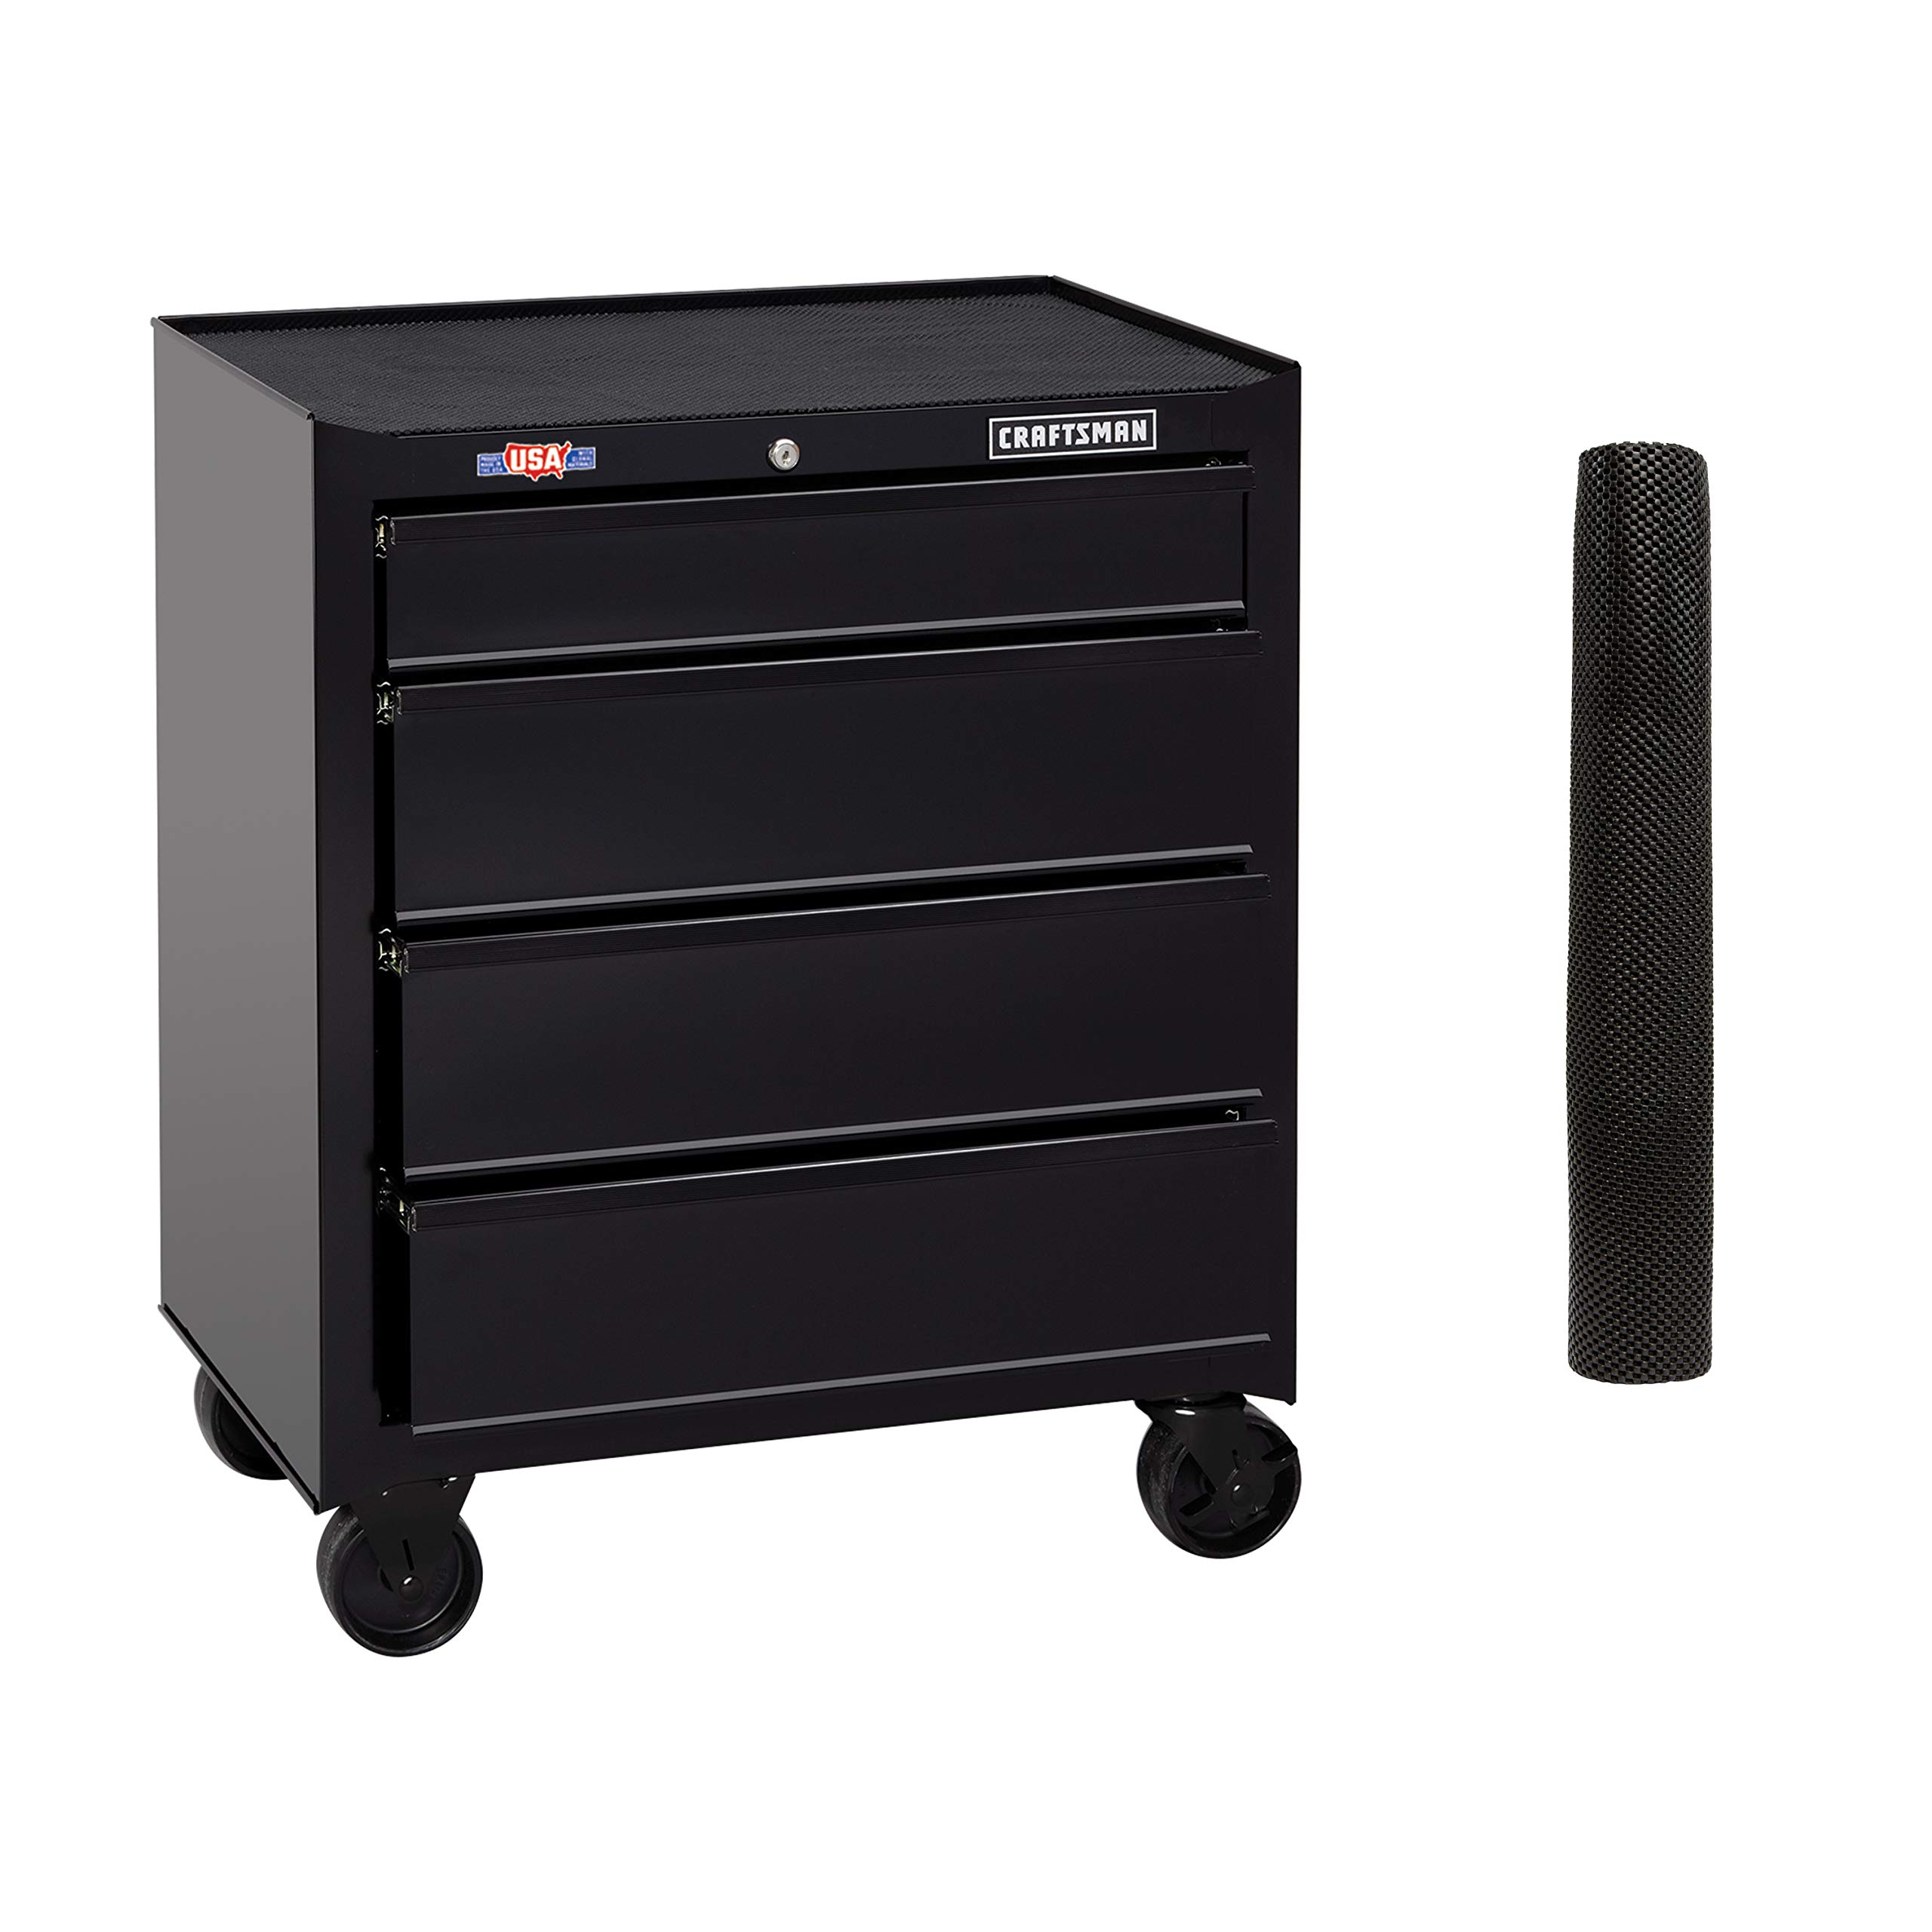 CRAFTSMAN Tool Cabinet, 26-Inch, 4 Drawer, Black (CMST82765BK) by Craftsman